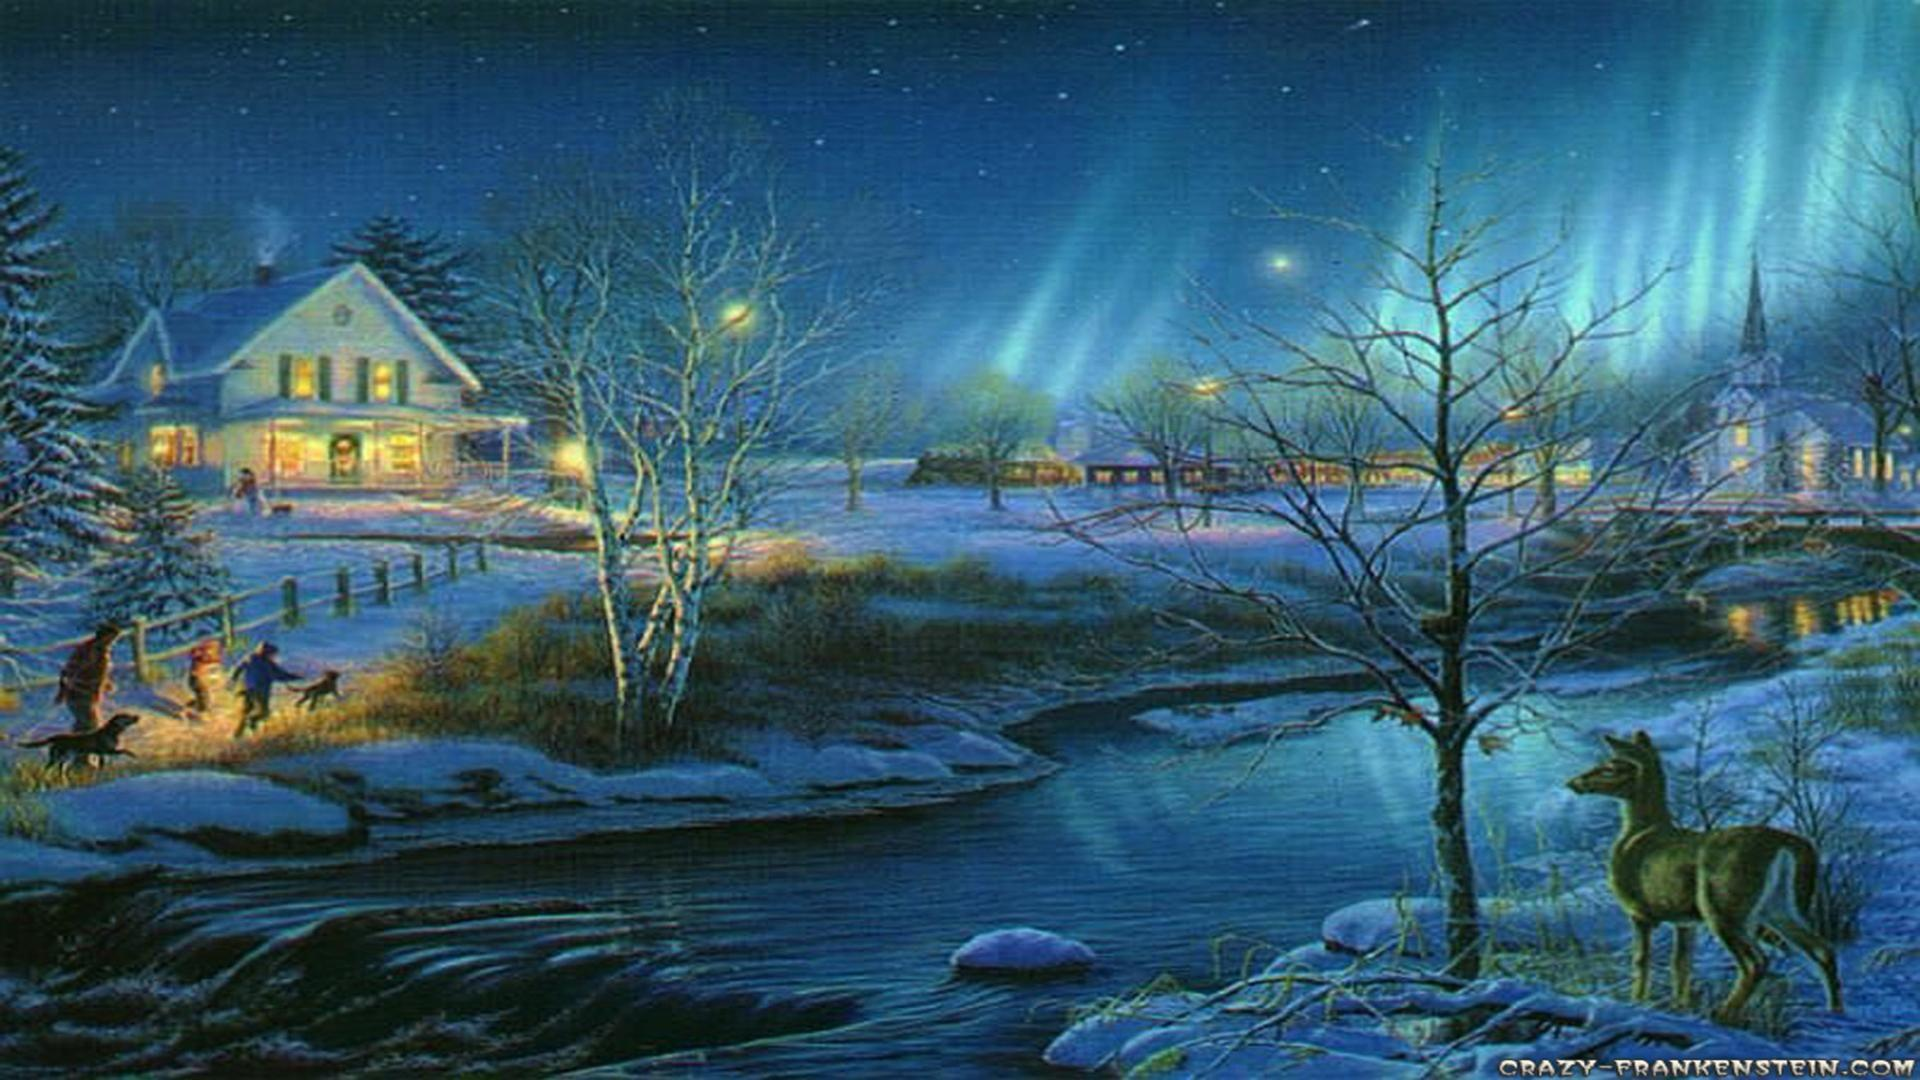 Free wallpaper winter christmas scenes wallpapersafari for Christmas landscape images